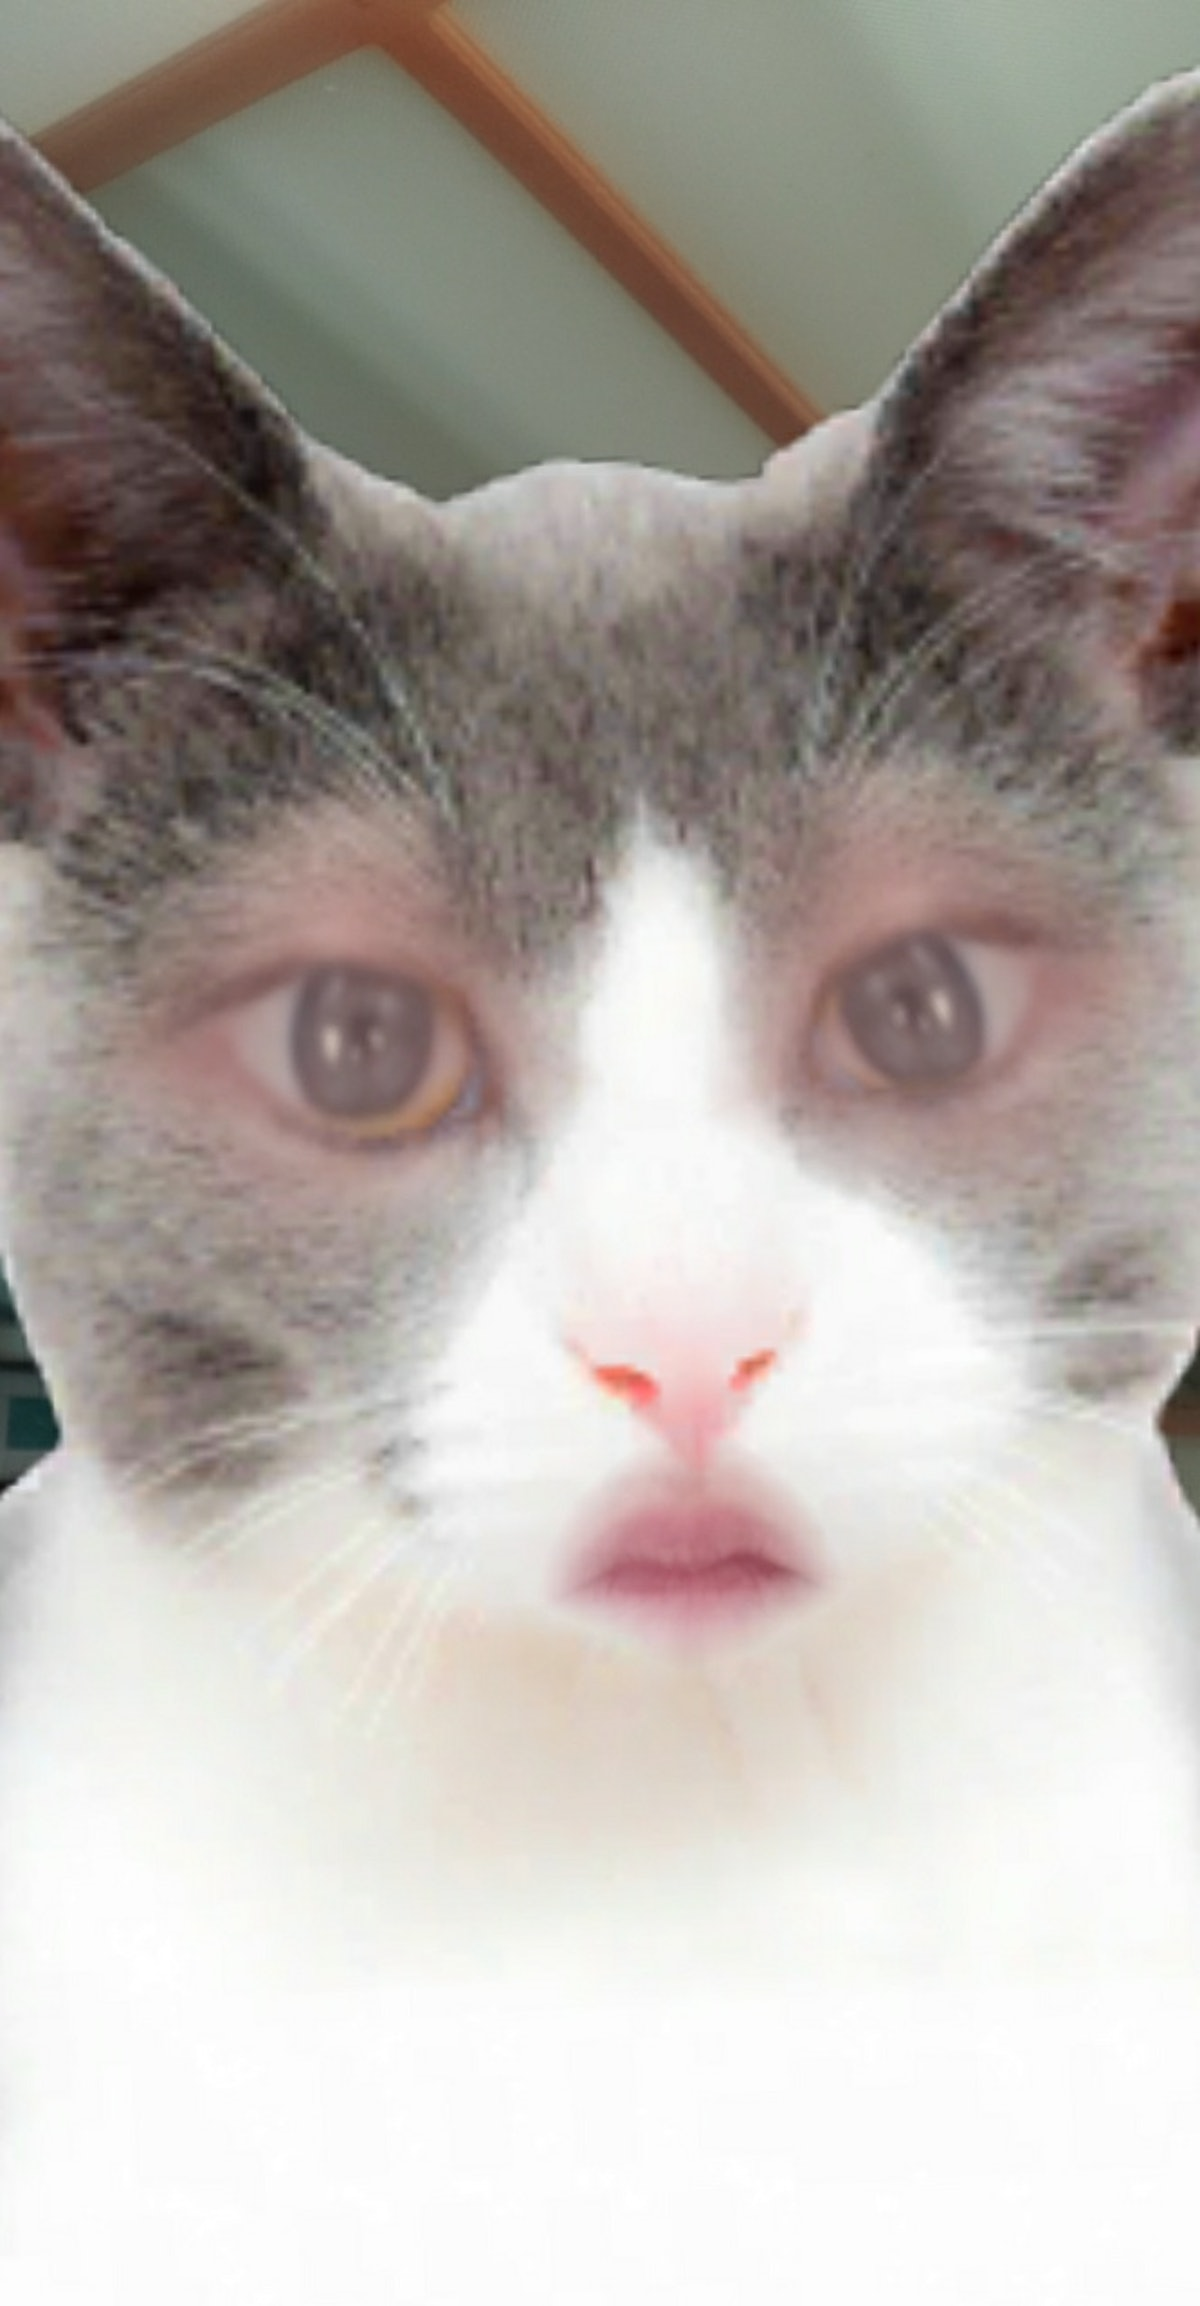 You can get a Snapchat cat face lens in a few easy steps.